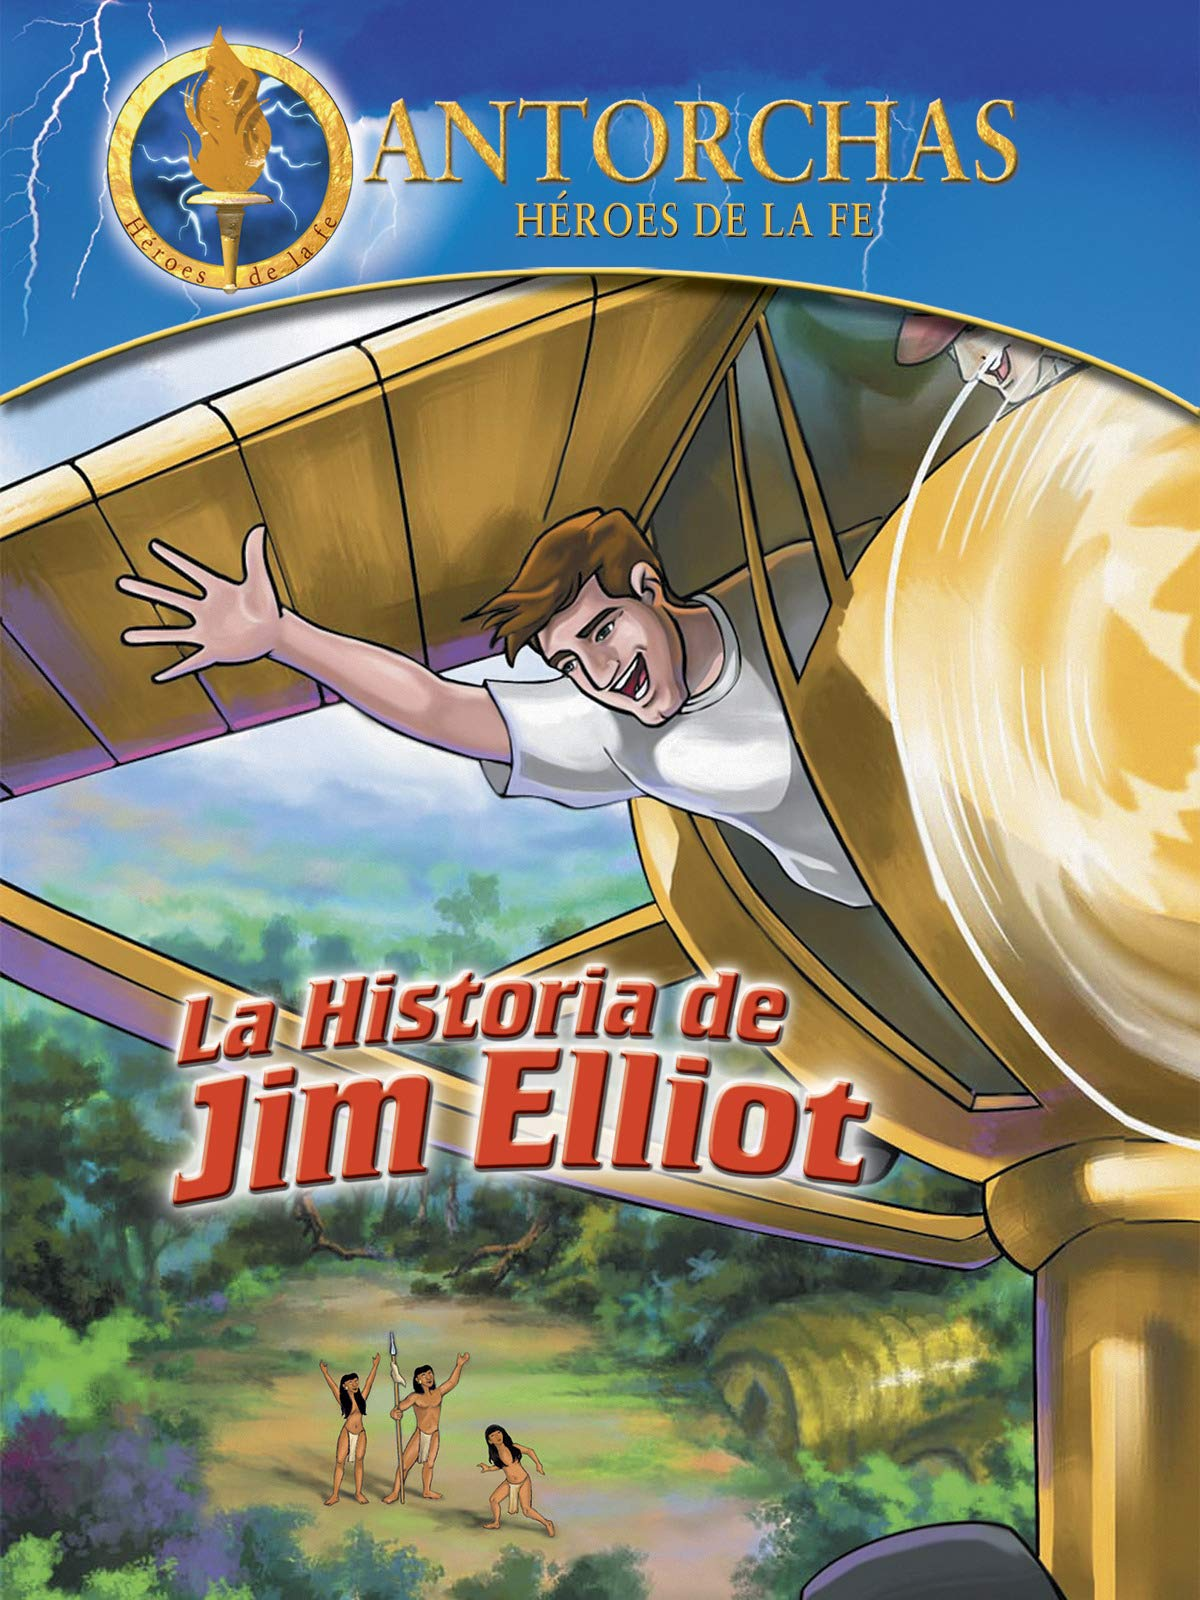 Antorchas El relato de Jim Elliot (Torchlighters Jim Elliot) on Amazon Prime Video UK